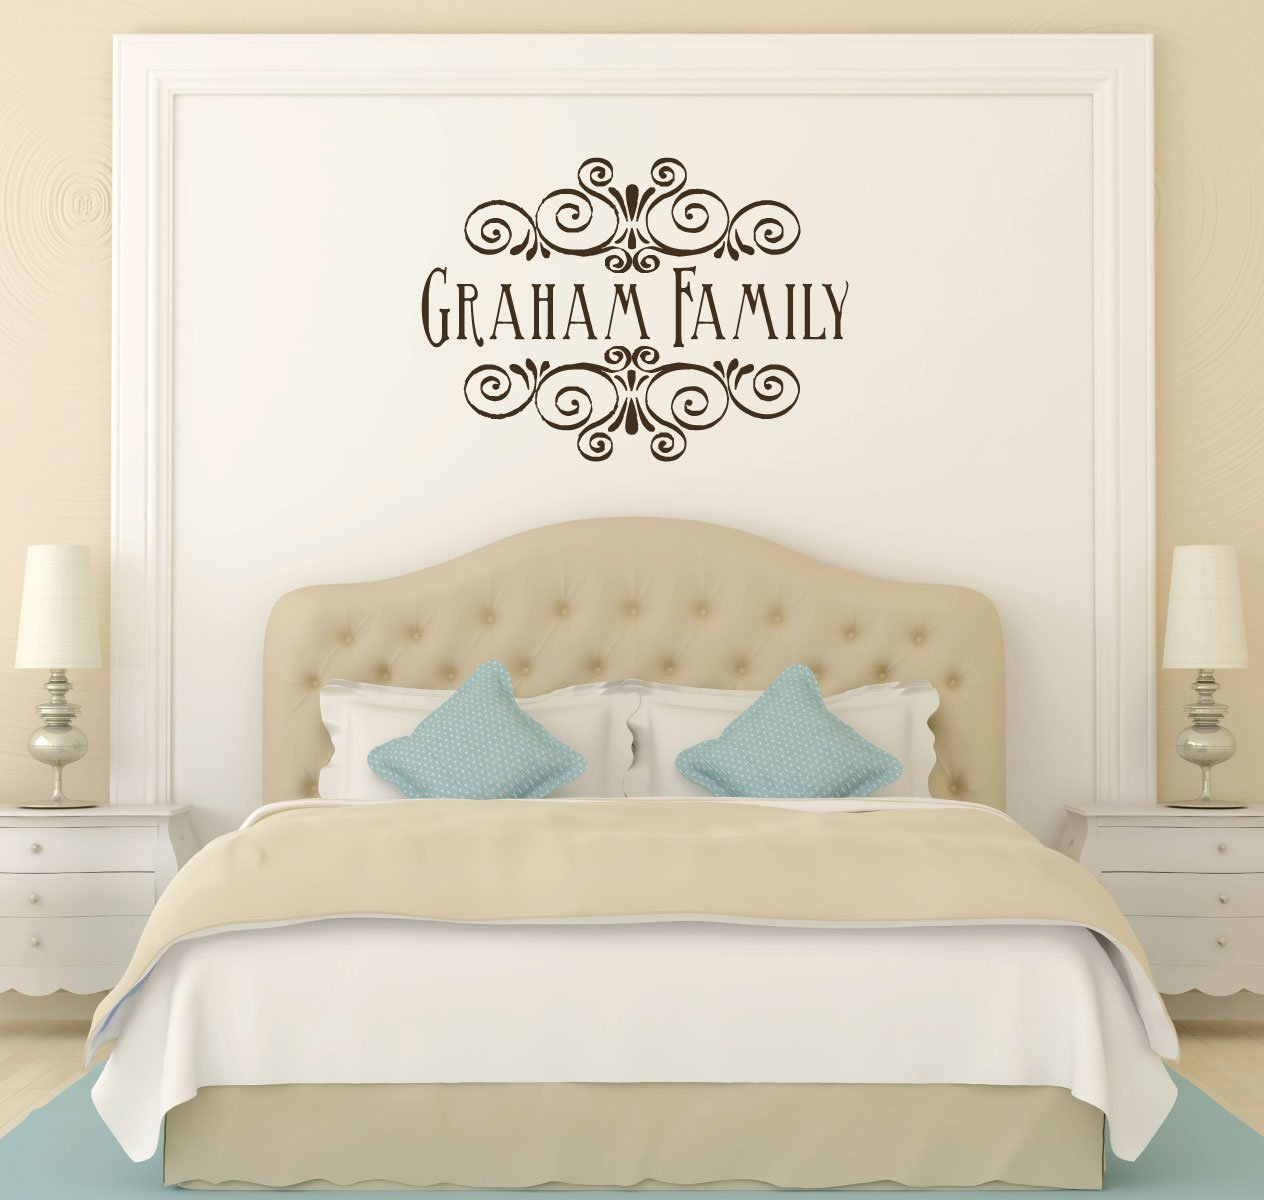 Family Name Decal - Personalized Vinyl Wall Sticker Design for Living Room, Bedroom, Kitchen -